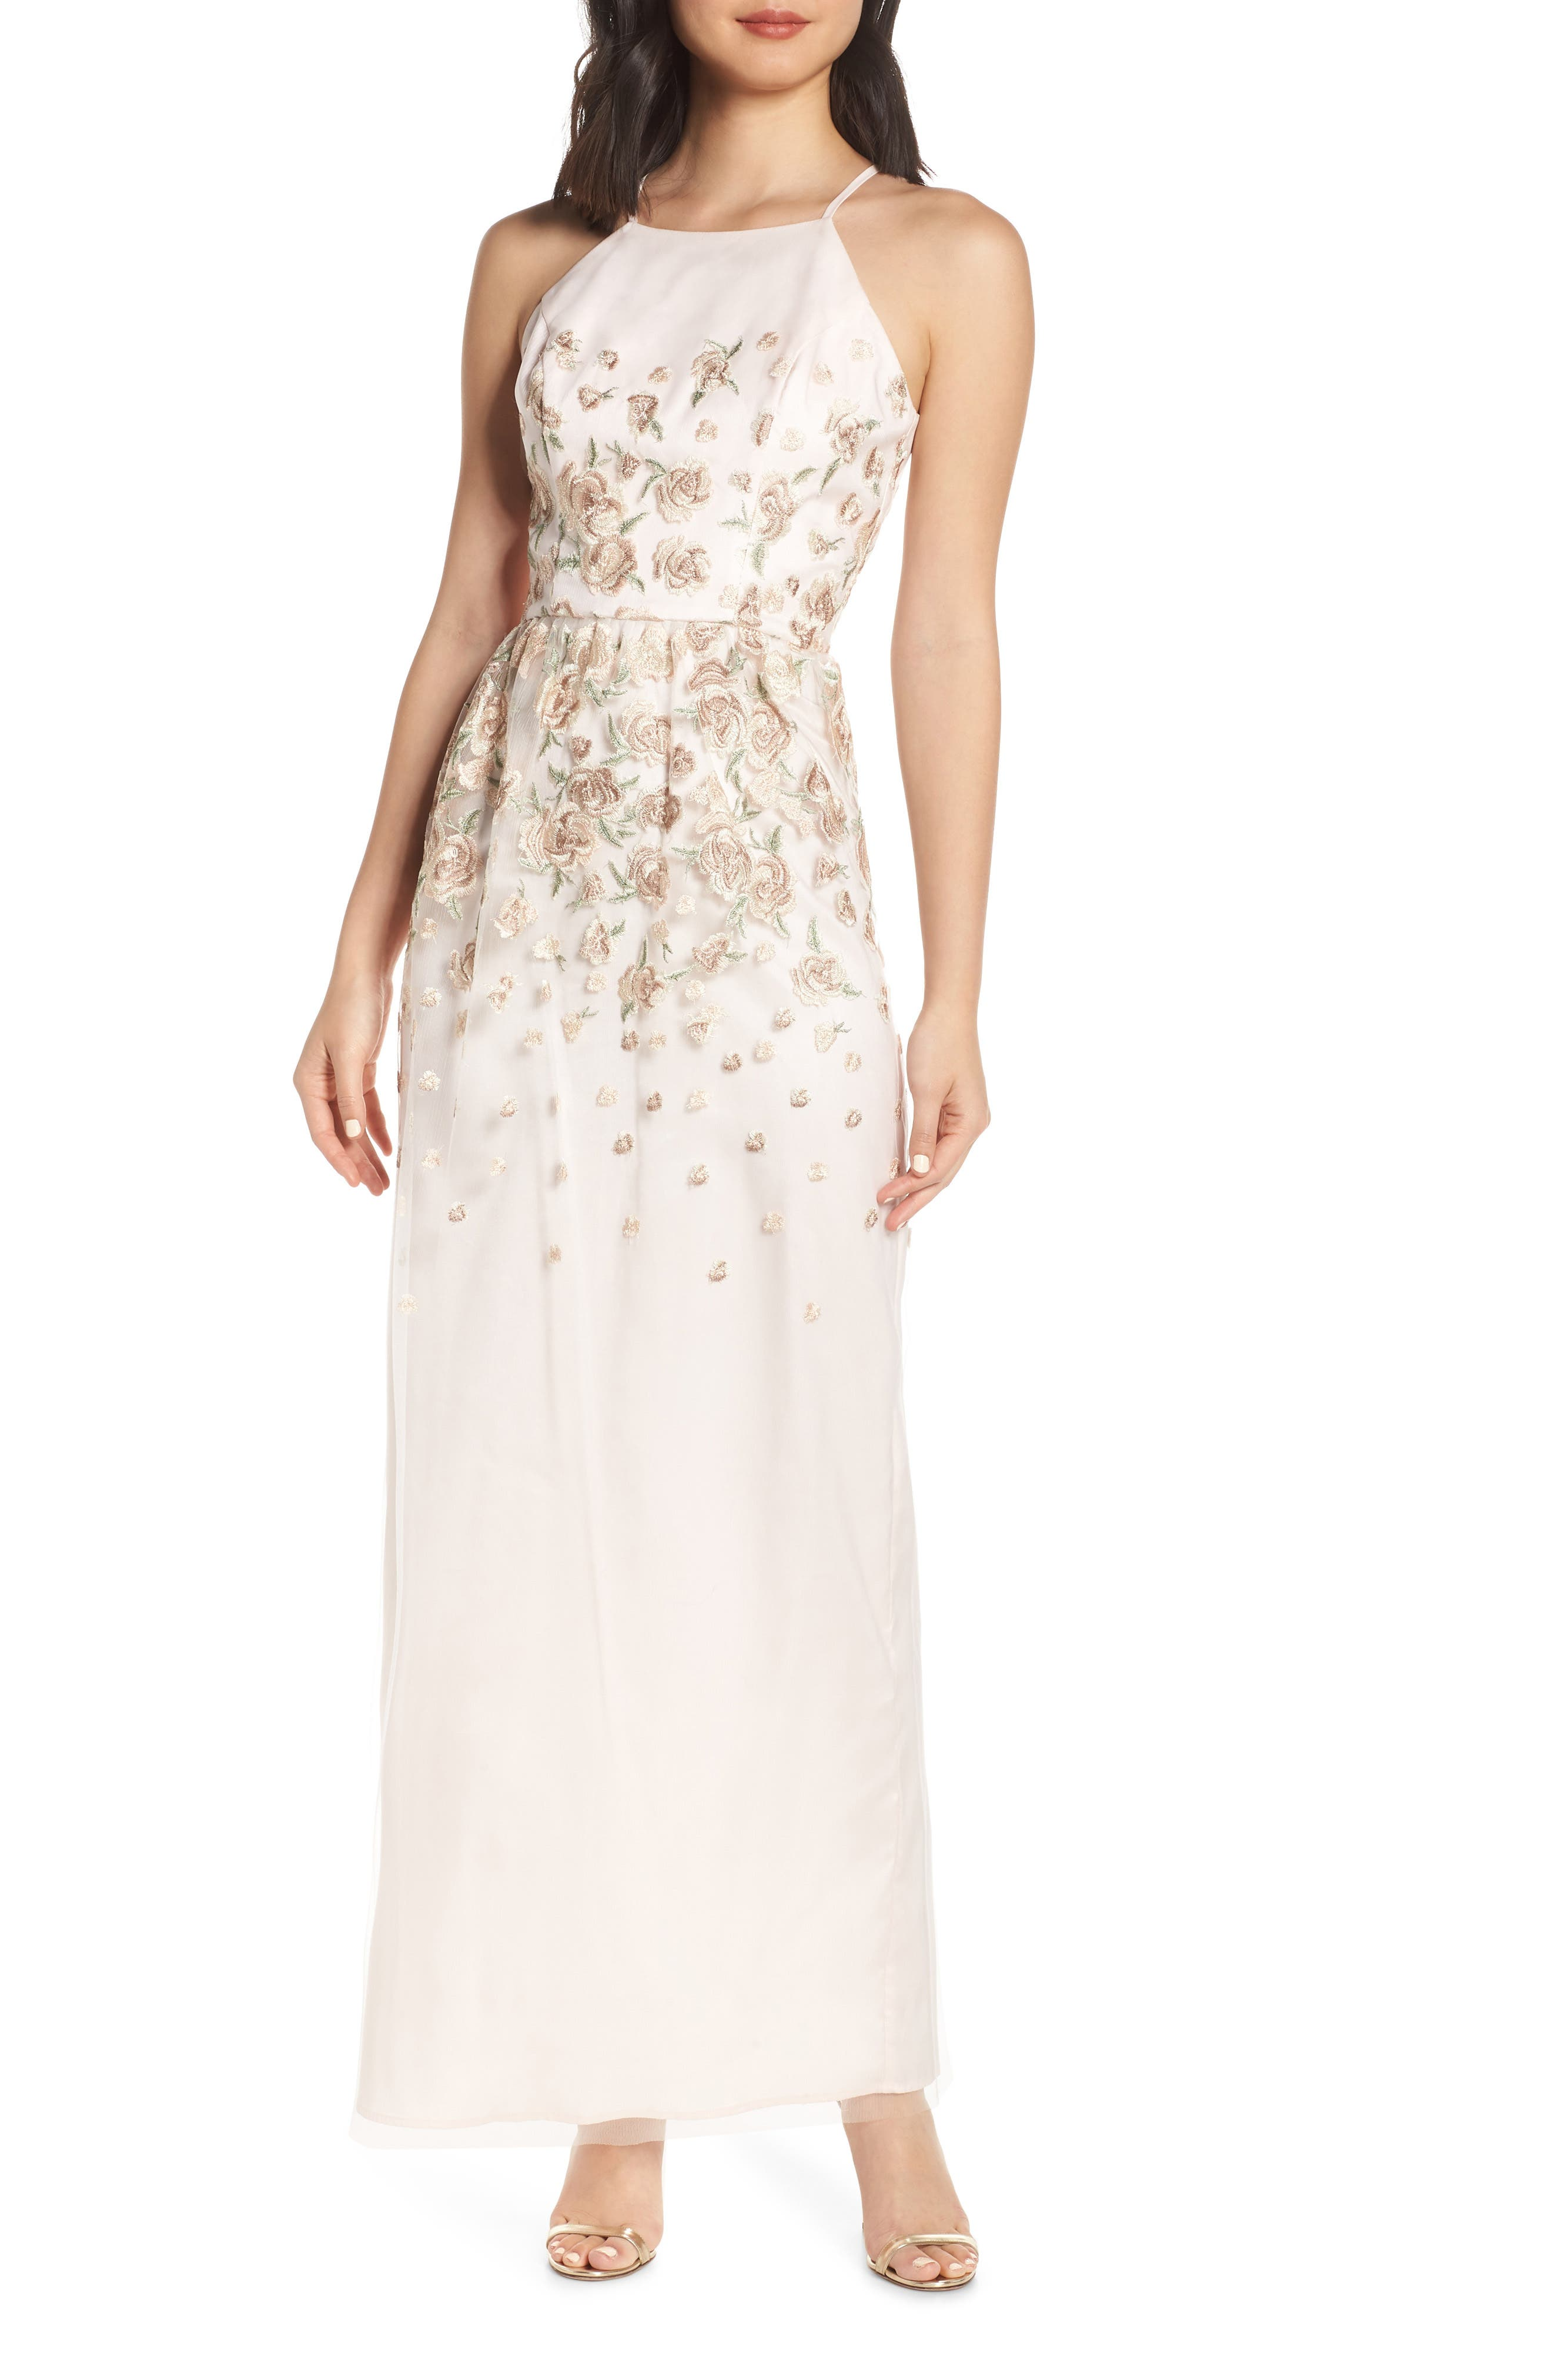 Chi Chi London Madelyn Embroidered Mesh Evening Dress, Beige